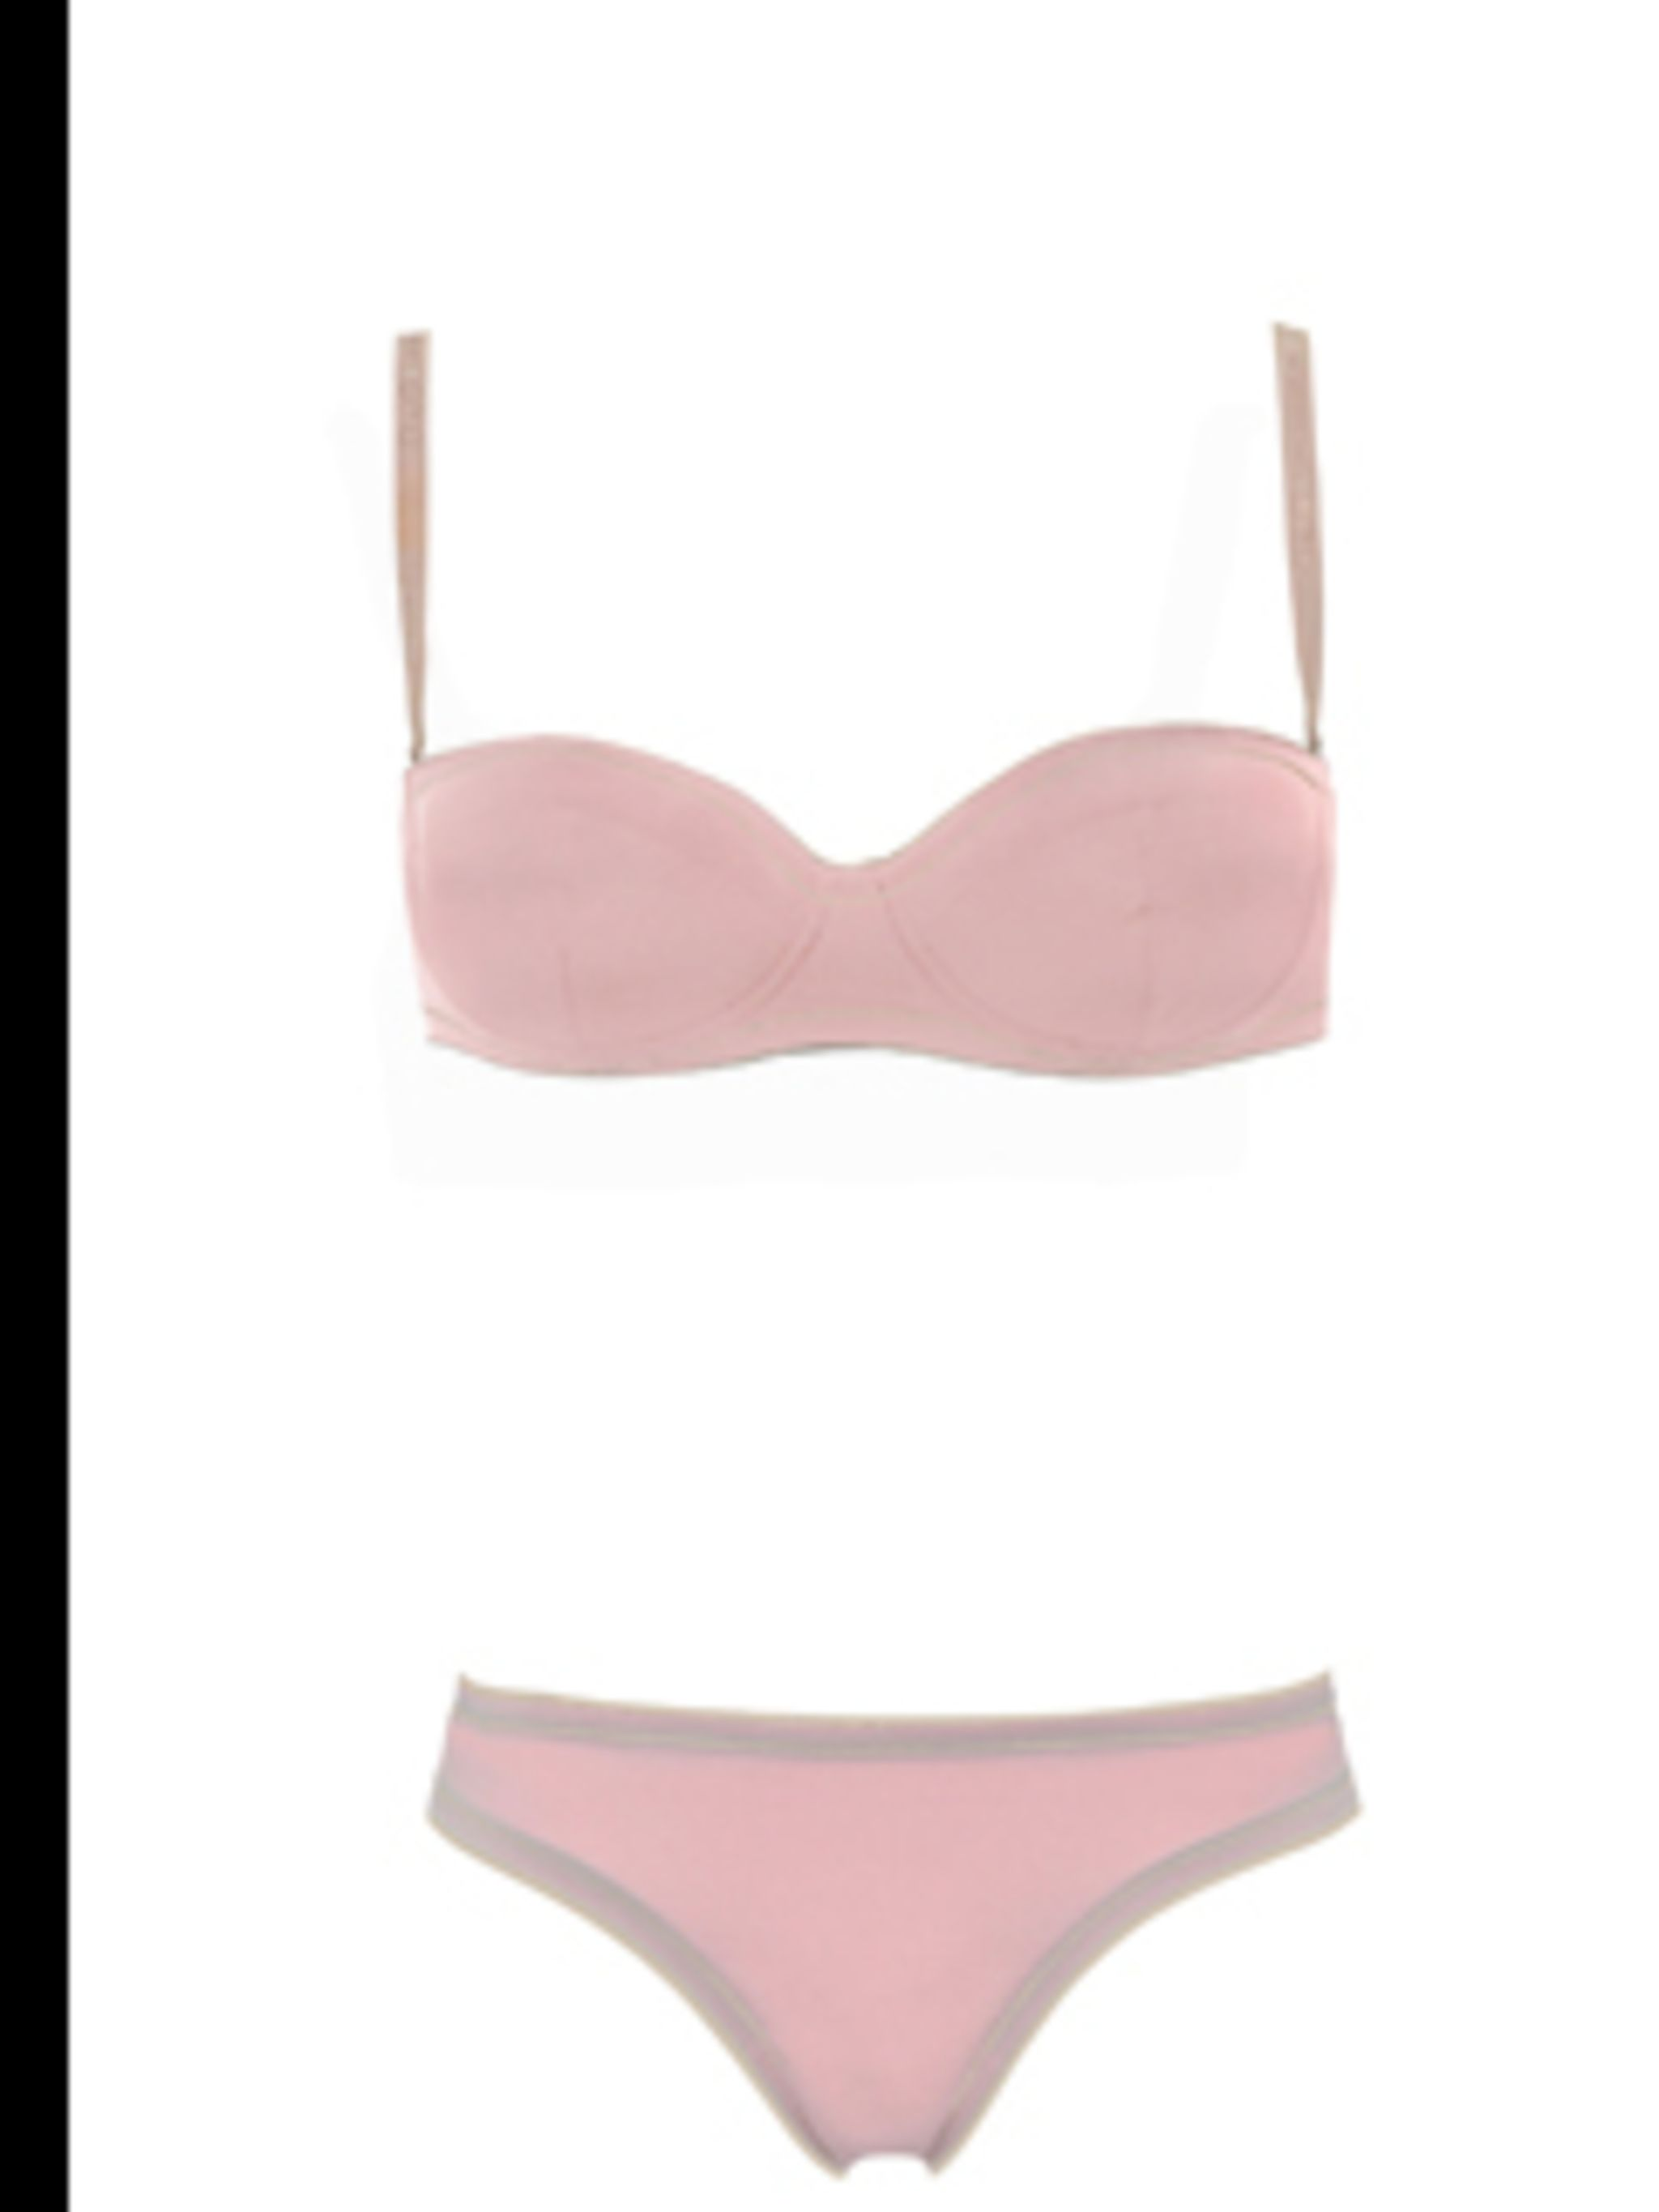 <p>Pink bra, from £33, and knickers, from £23, by D&G, for stockists call 02074959250</p>